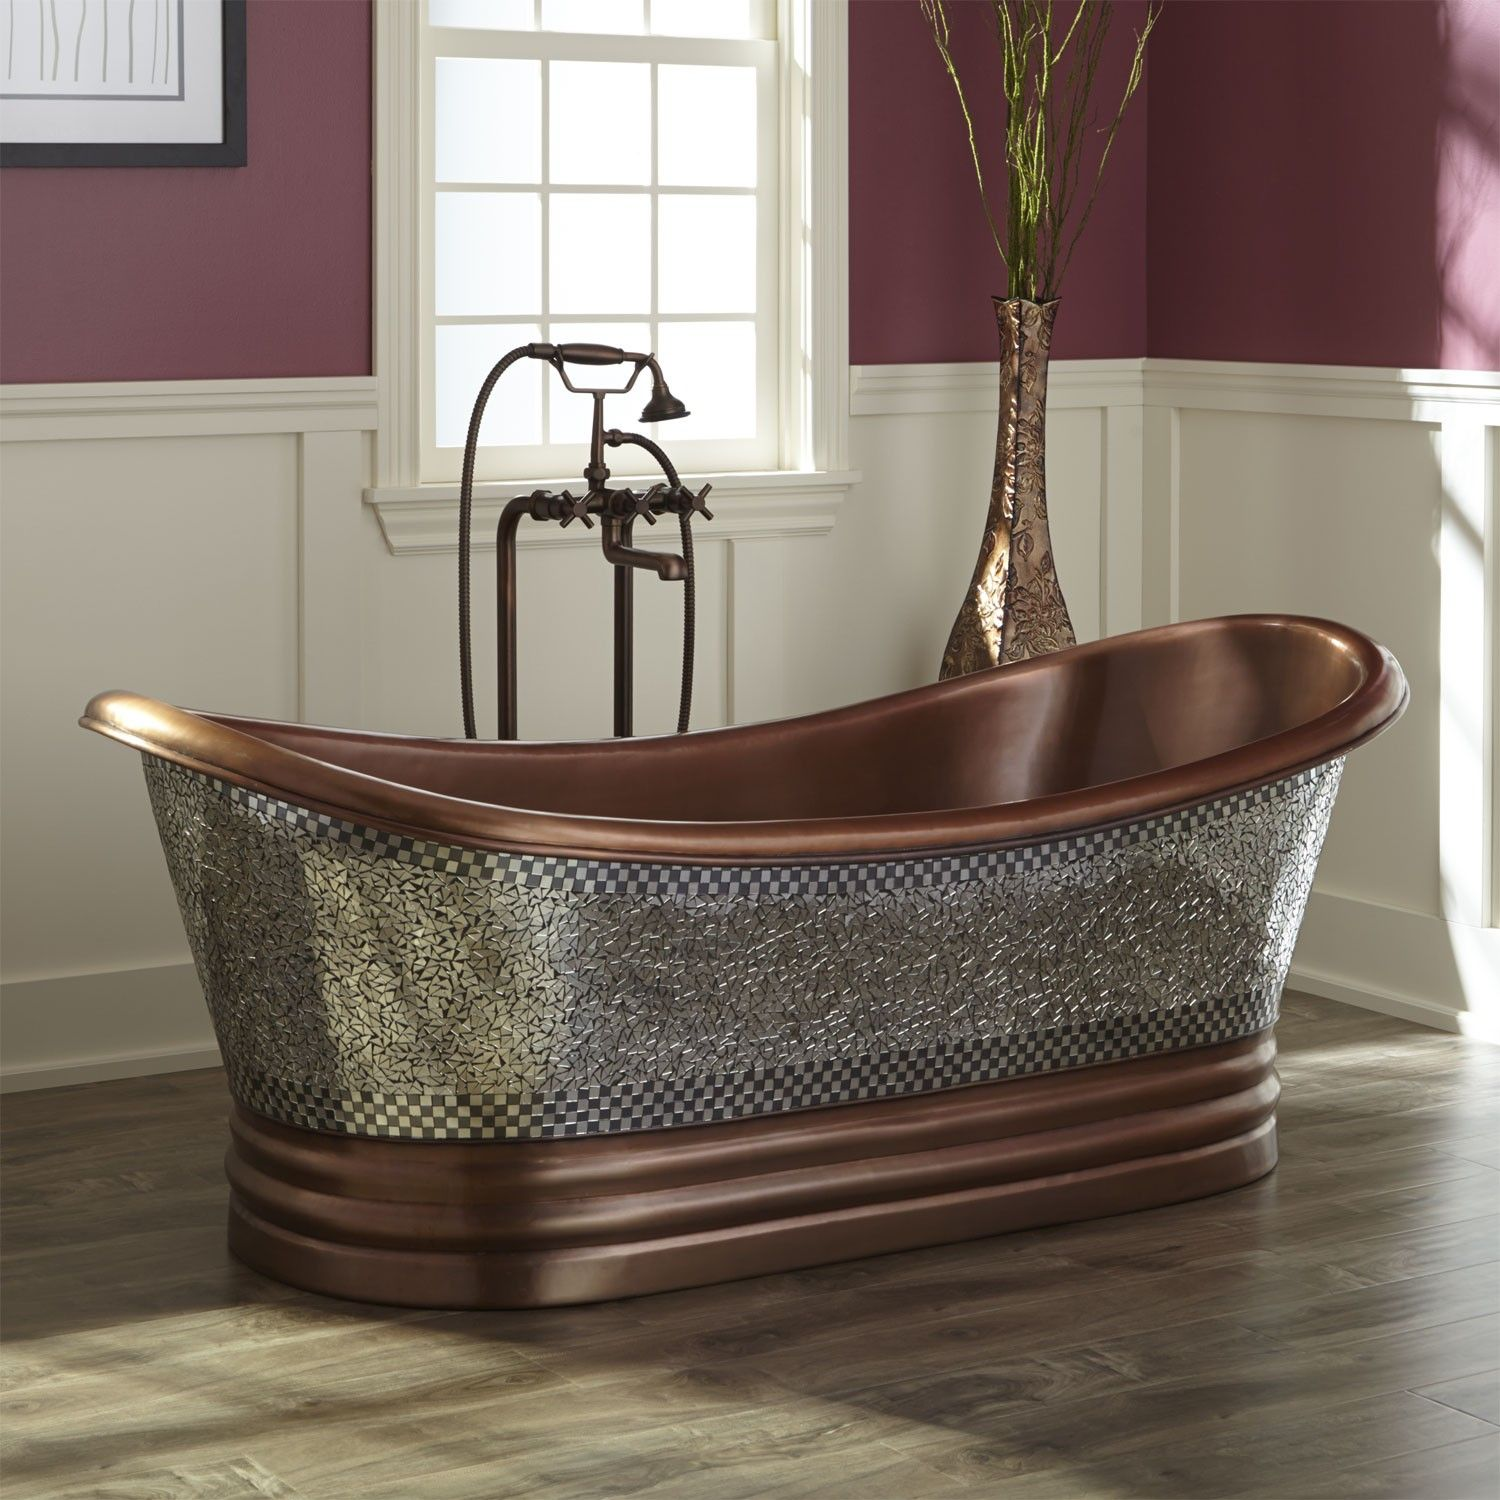 68 constantine mosaic copper double slipper tub tubs for Bathroom baths for sale